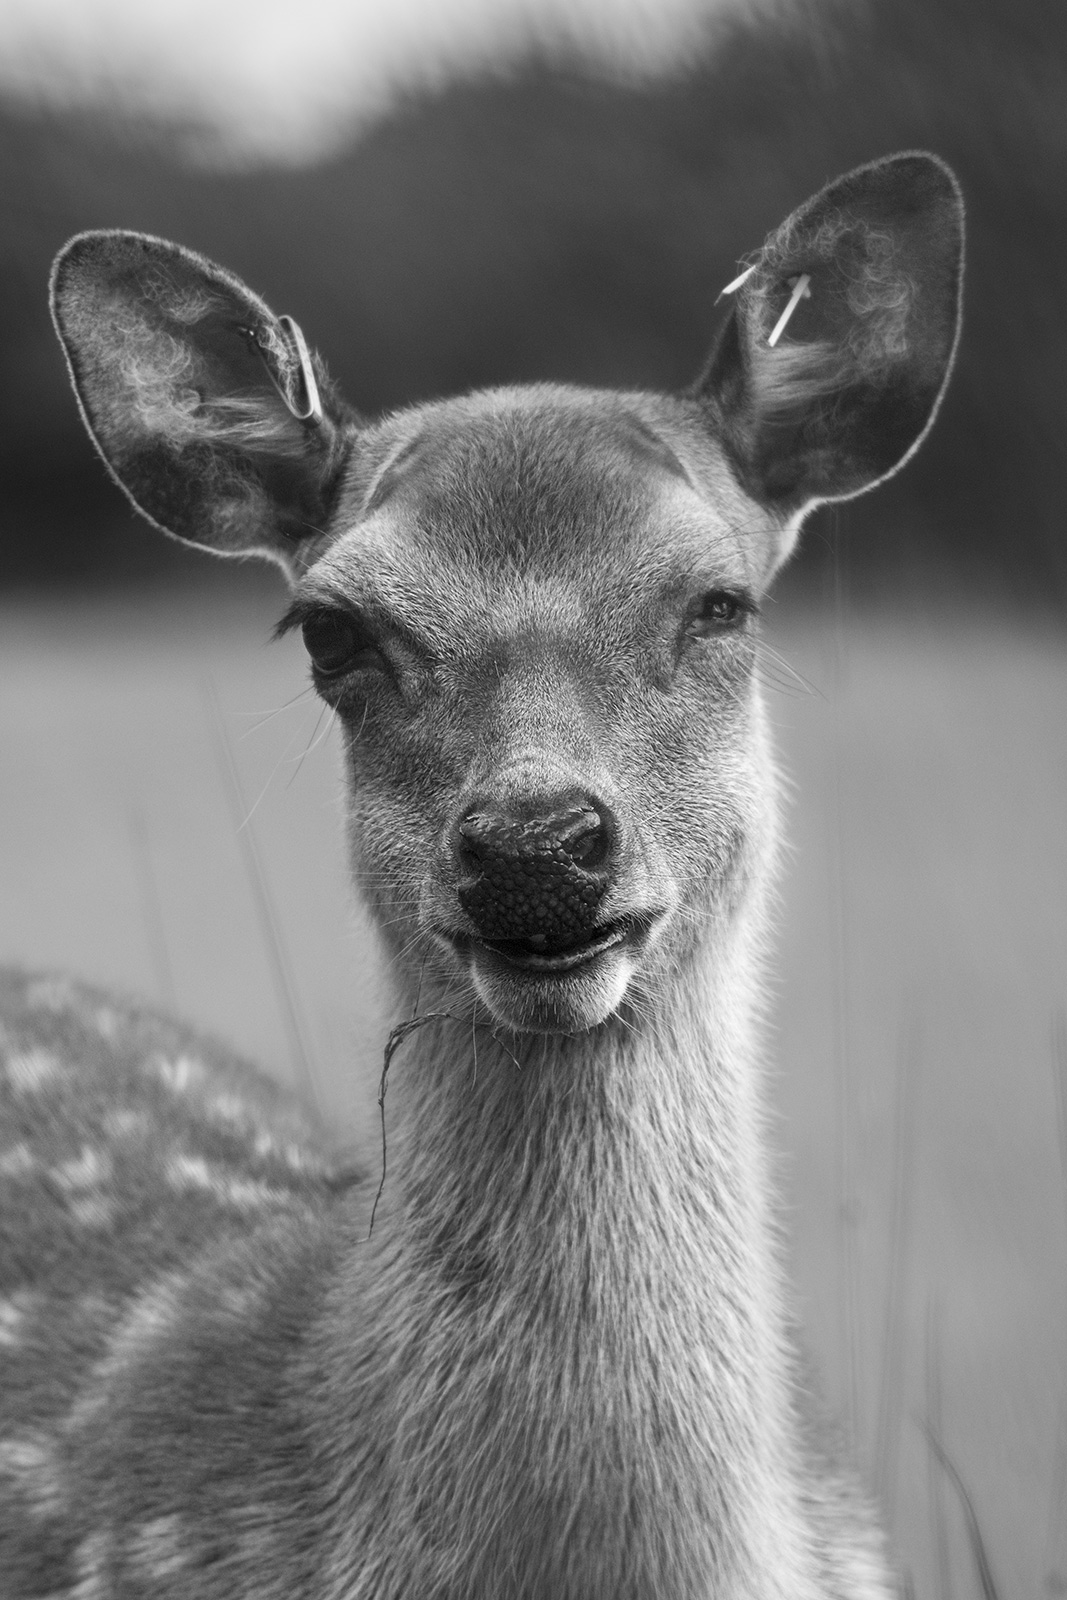 Fallow deer doe with one eye closeup portrait, rural monochrome portrait Woodmancote West Sussex UK ©P. Maton 2019 eyeteeth.net